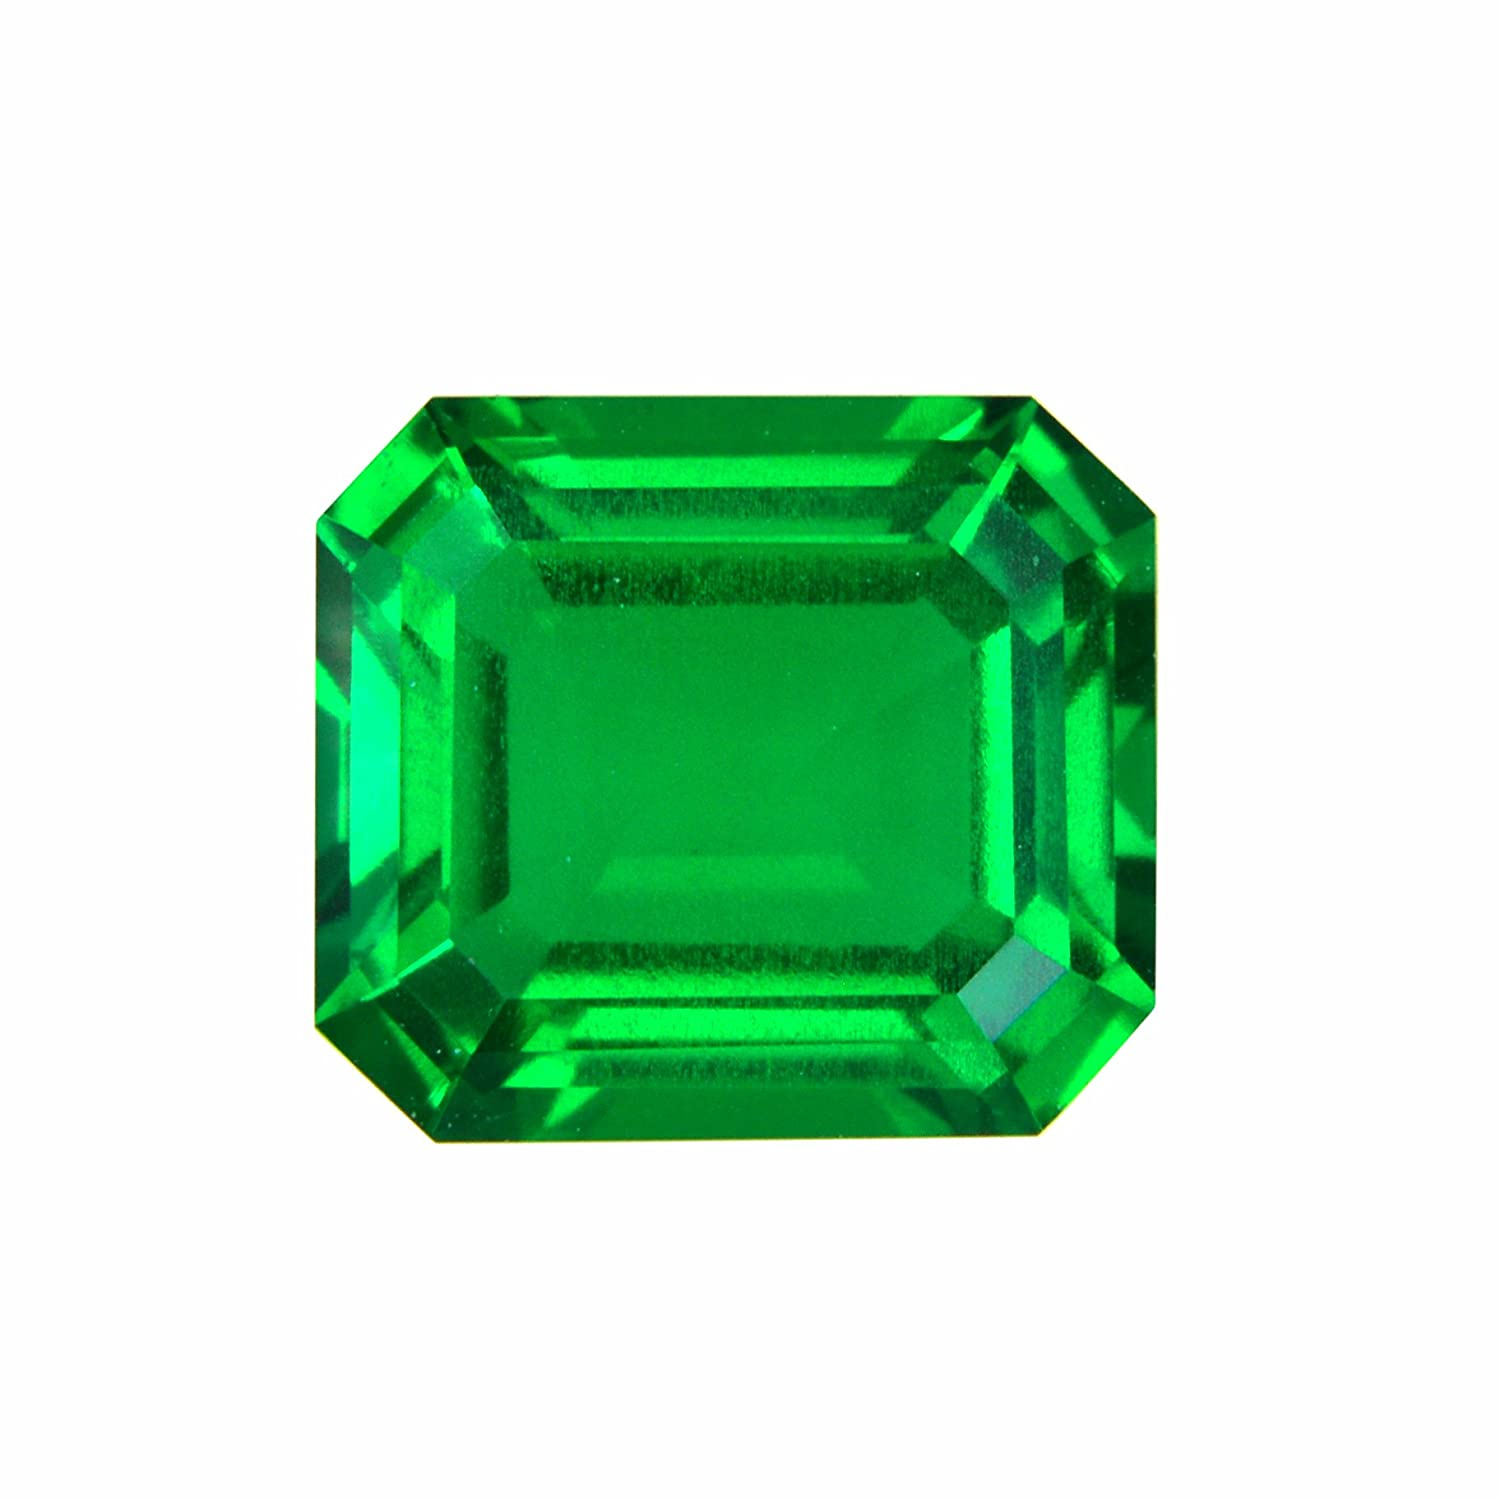 store green zirconia machine stones jewelry quality shape stone cubic synthetic for setting loose product corundum heart cut emerald aaa rbvaslqwz lot